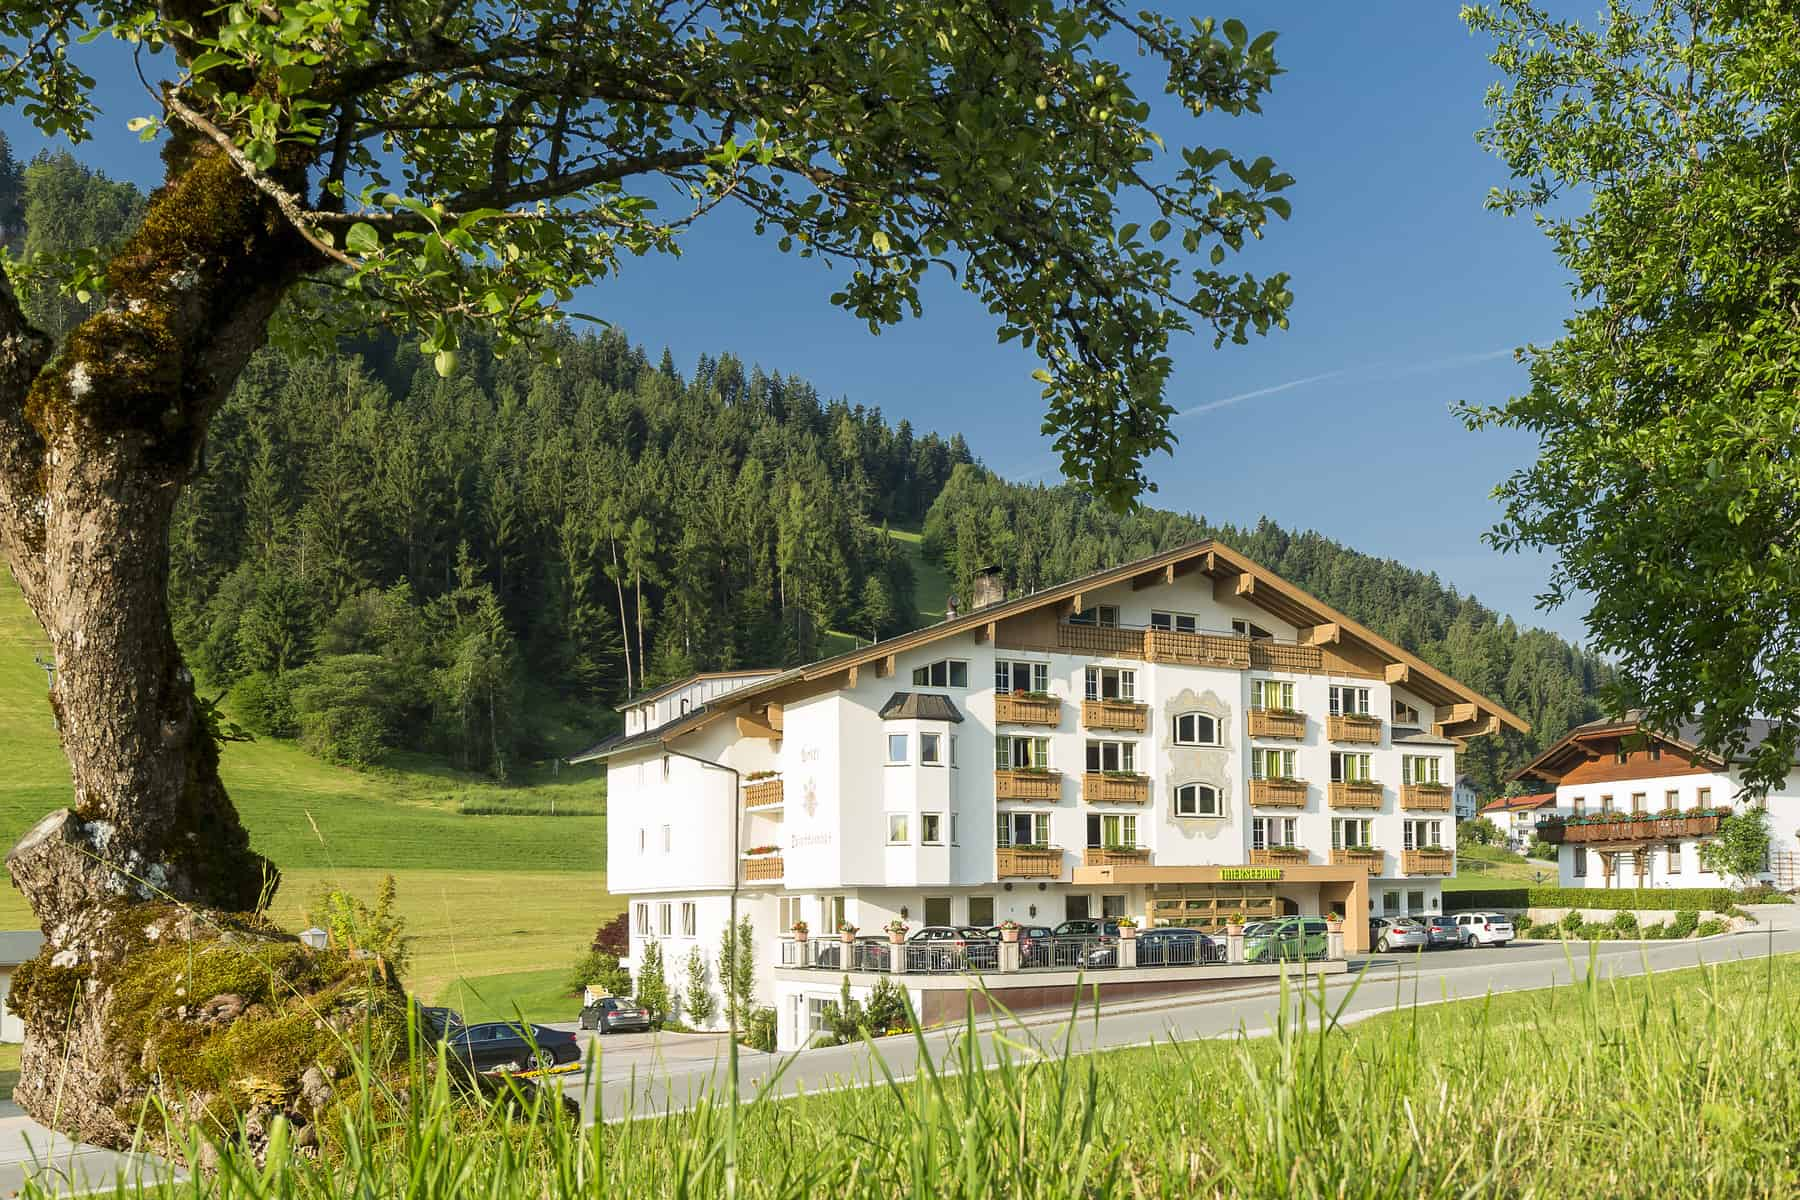 FAMILY-FRIENDLY HOTEL THIERSEERHOF IN TIROL